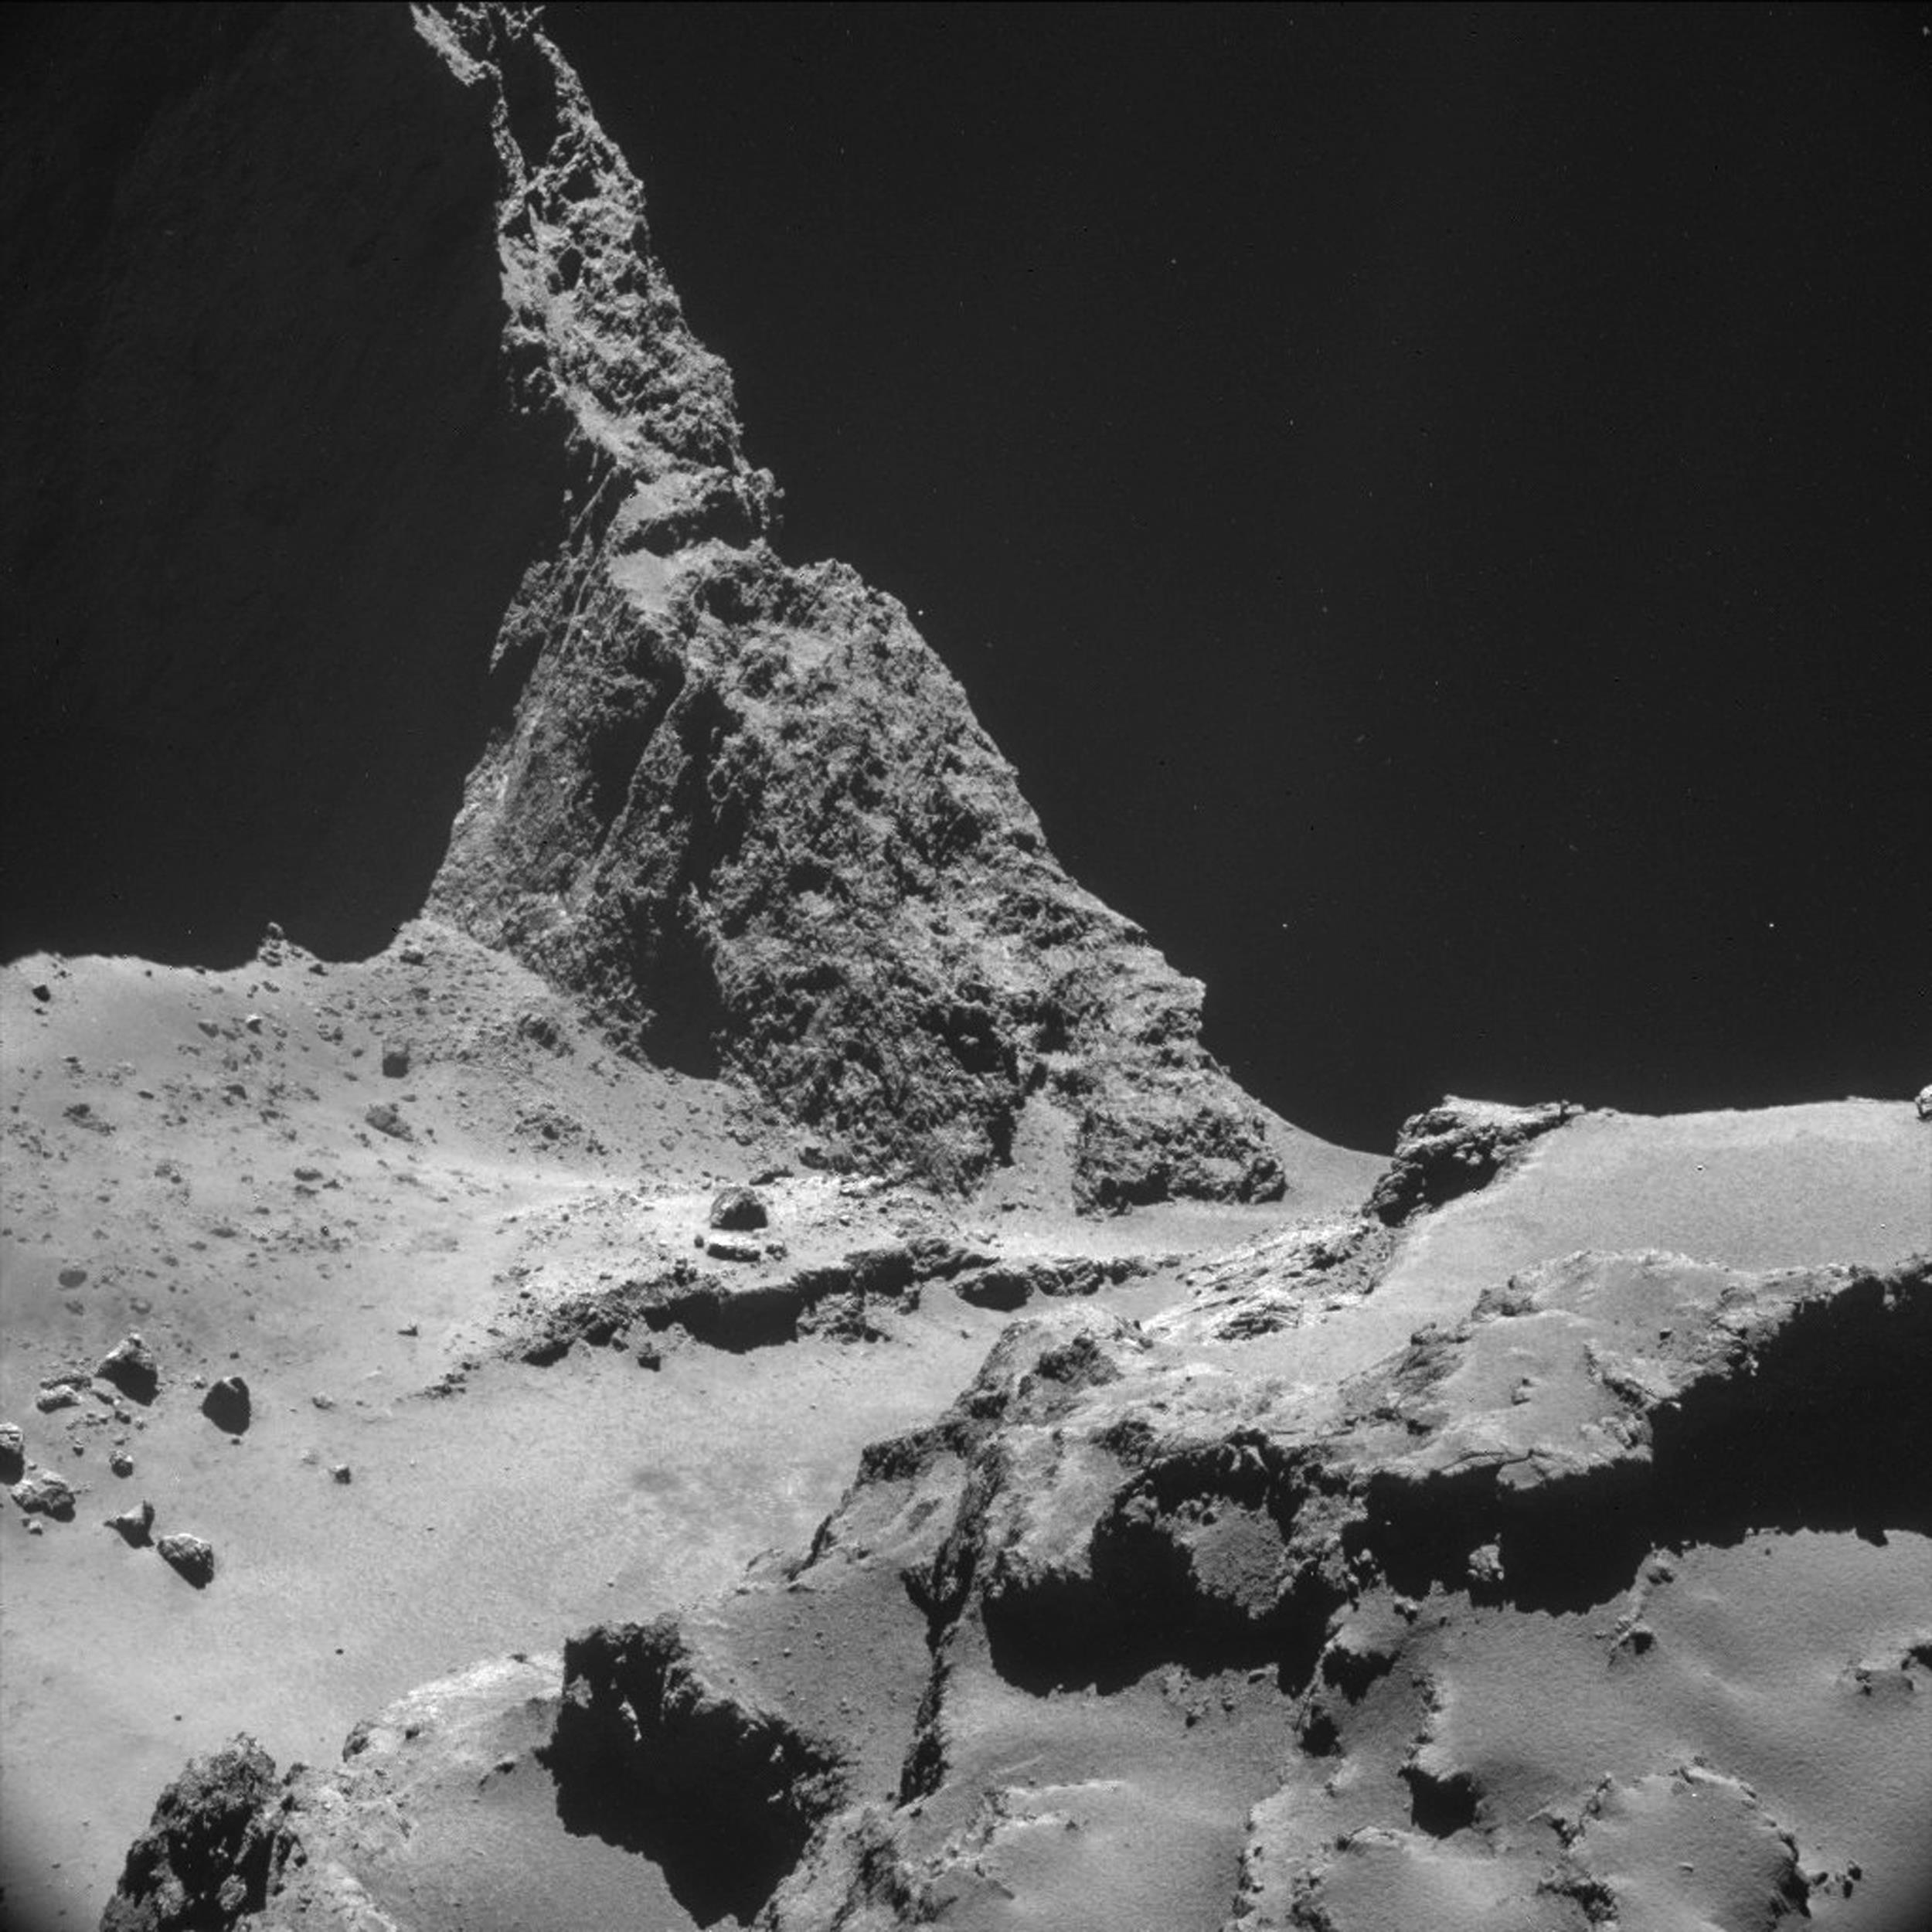 Mission Complete: Rosetta Probe Relays Photos From Comet ...